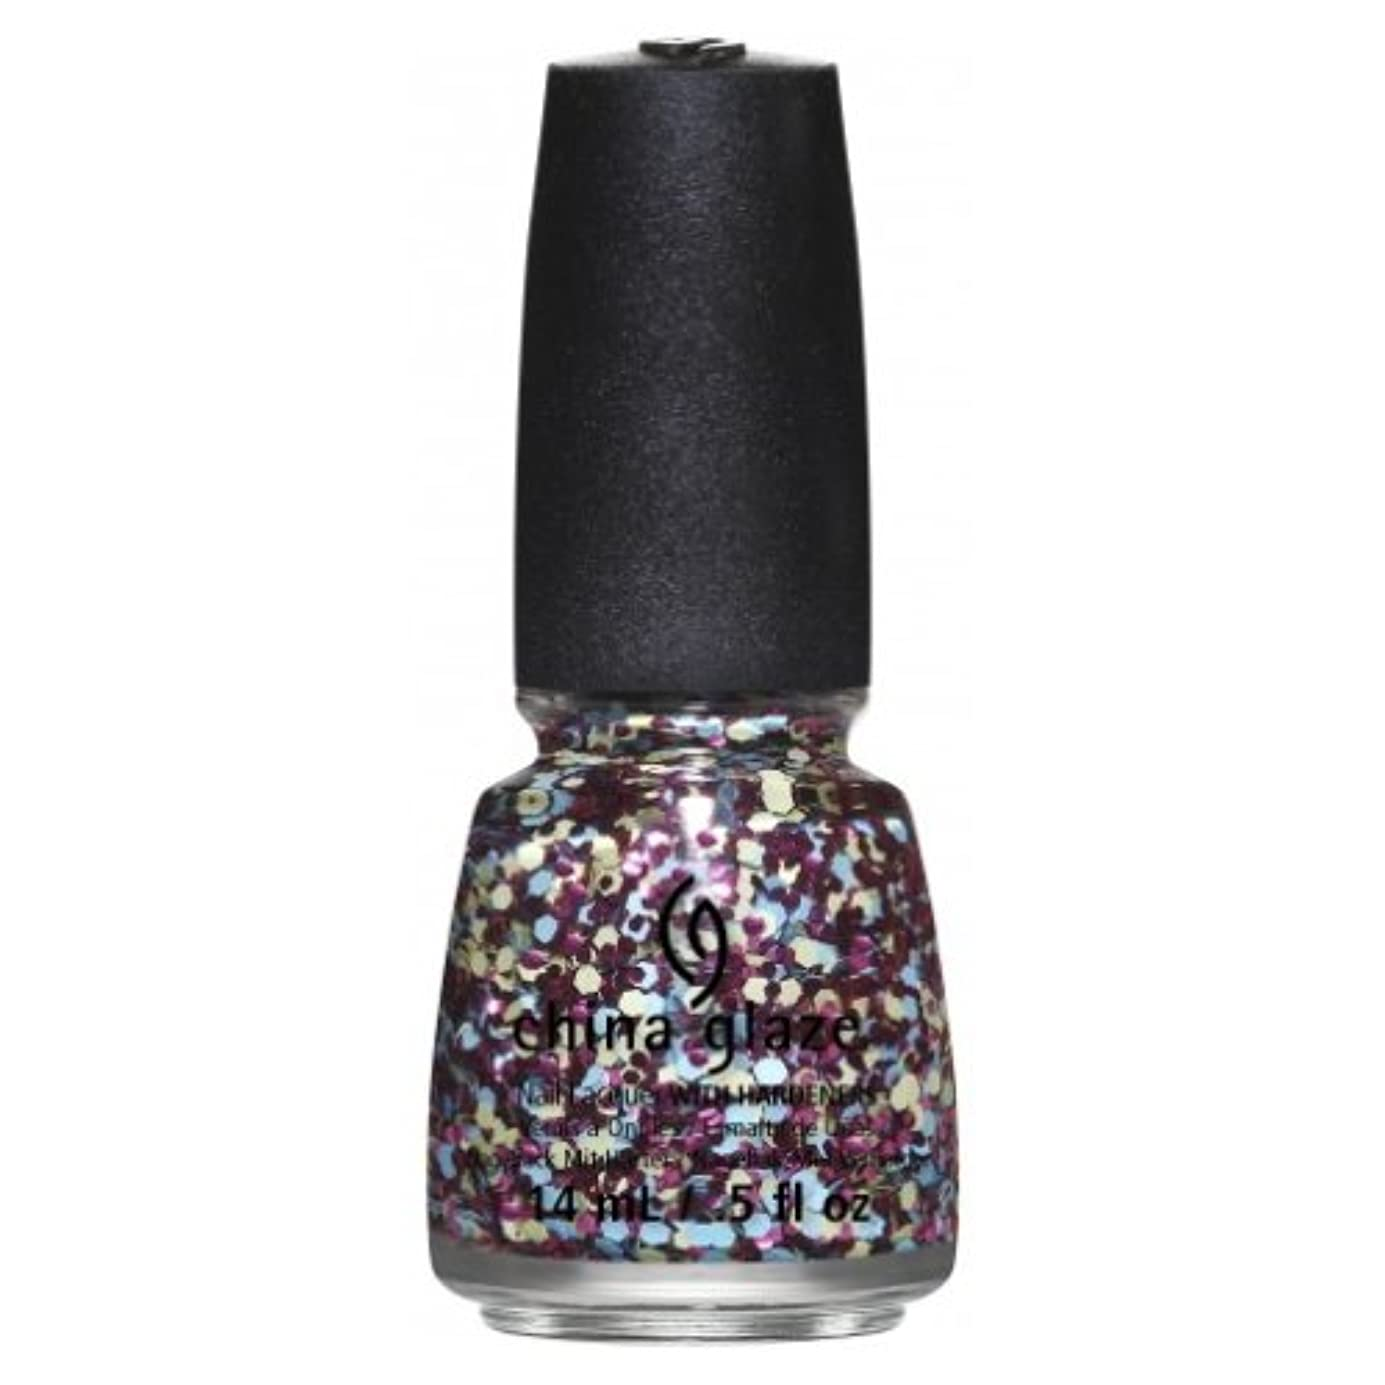 仲人吸い込む高める(6 Pack) CHINA GLAZE Nail Lacquer - Suprise Collection - I'm A Go Glitter (並行輸入品)